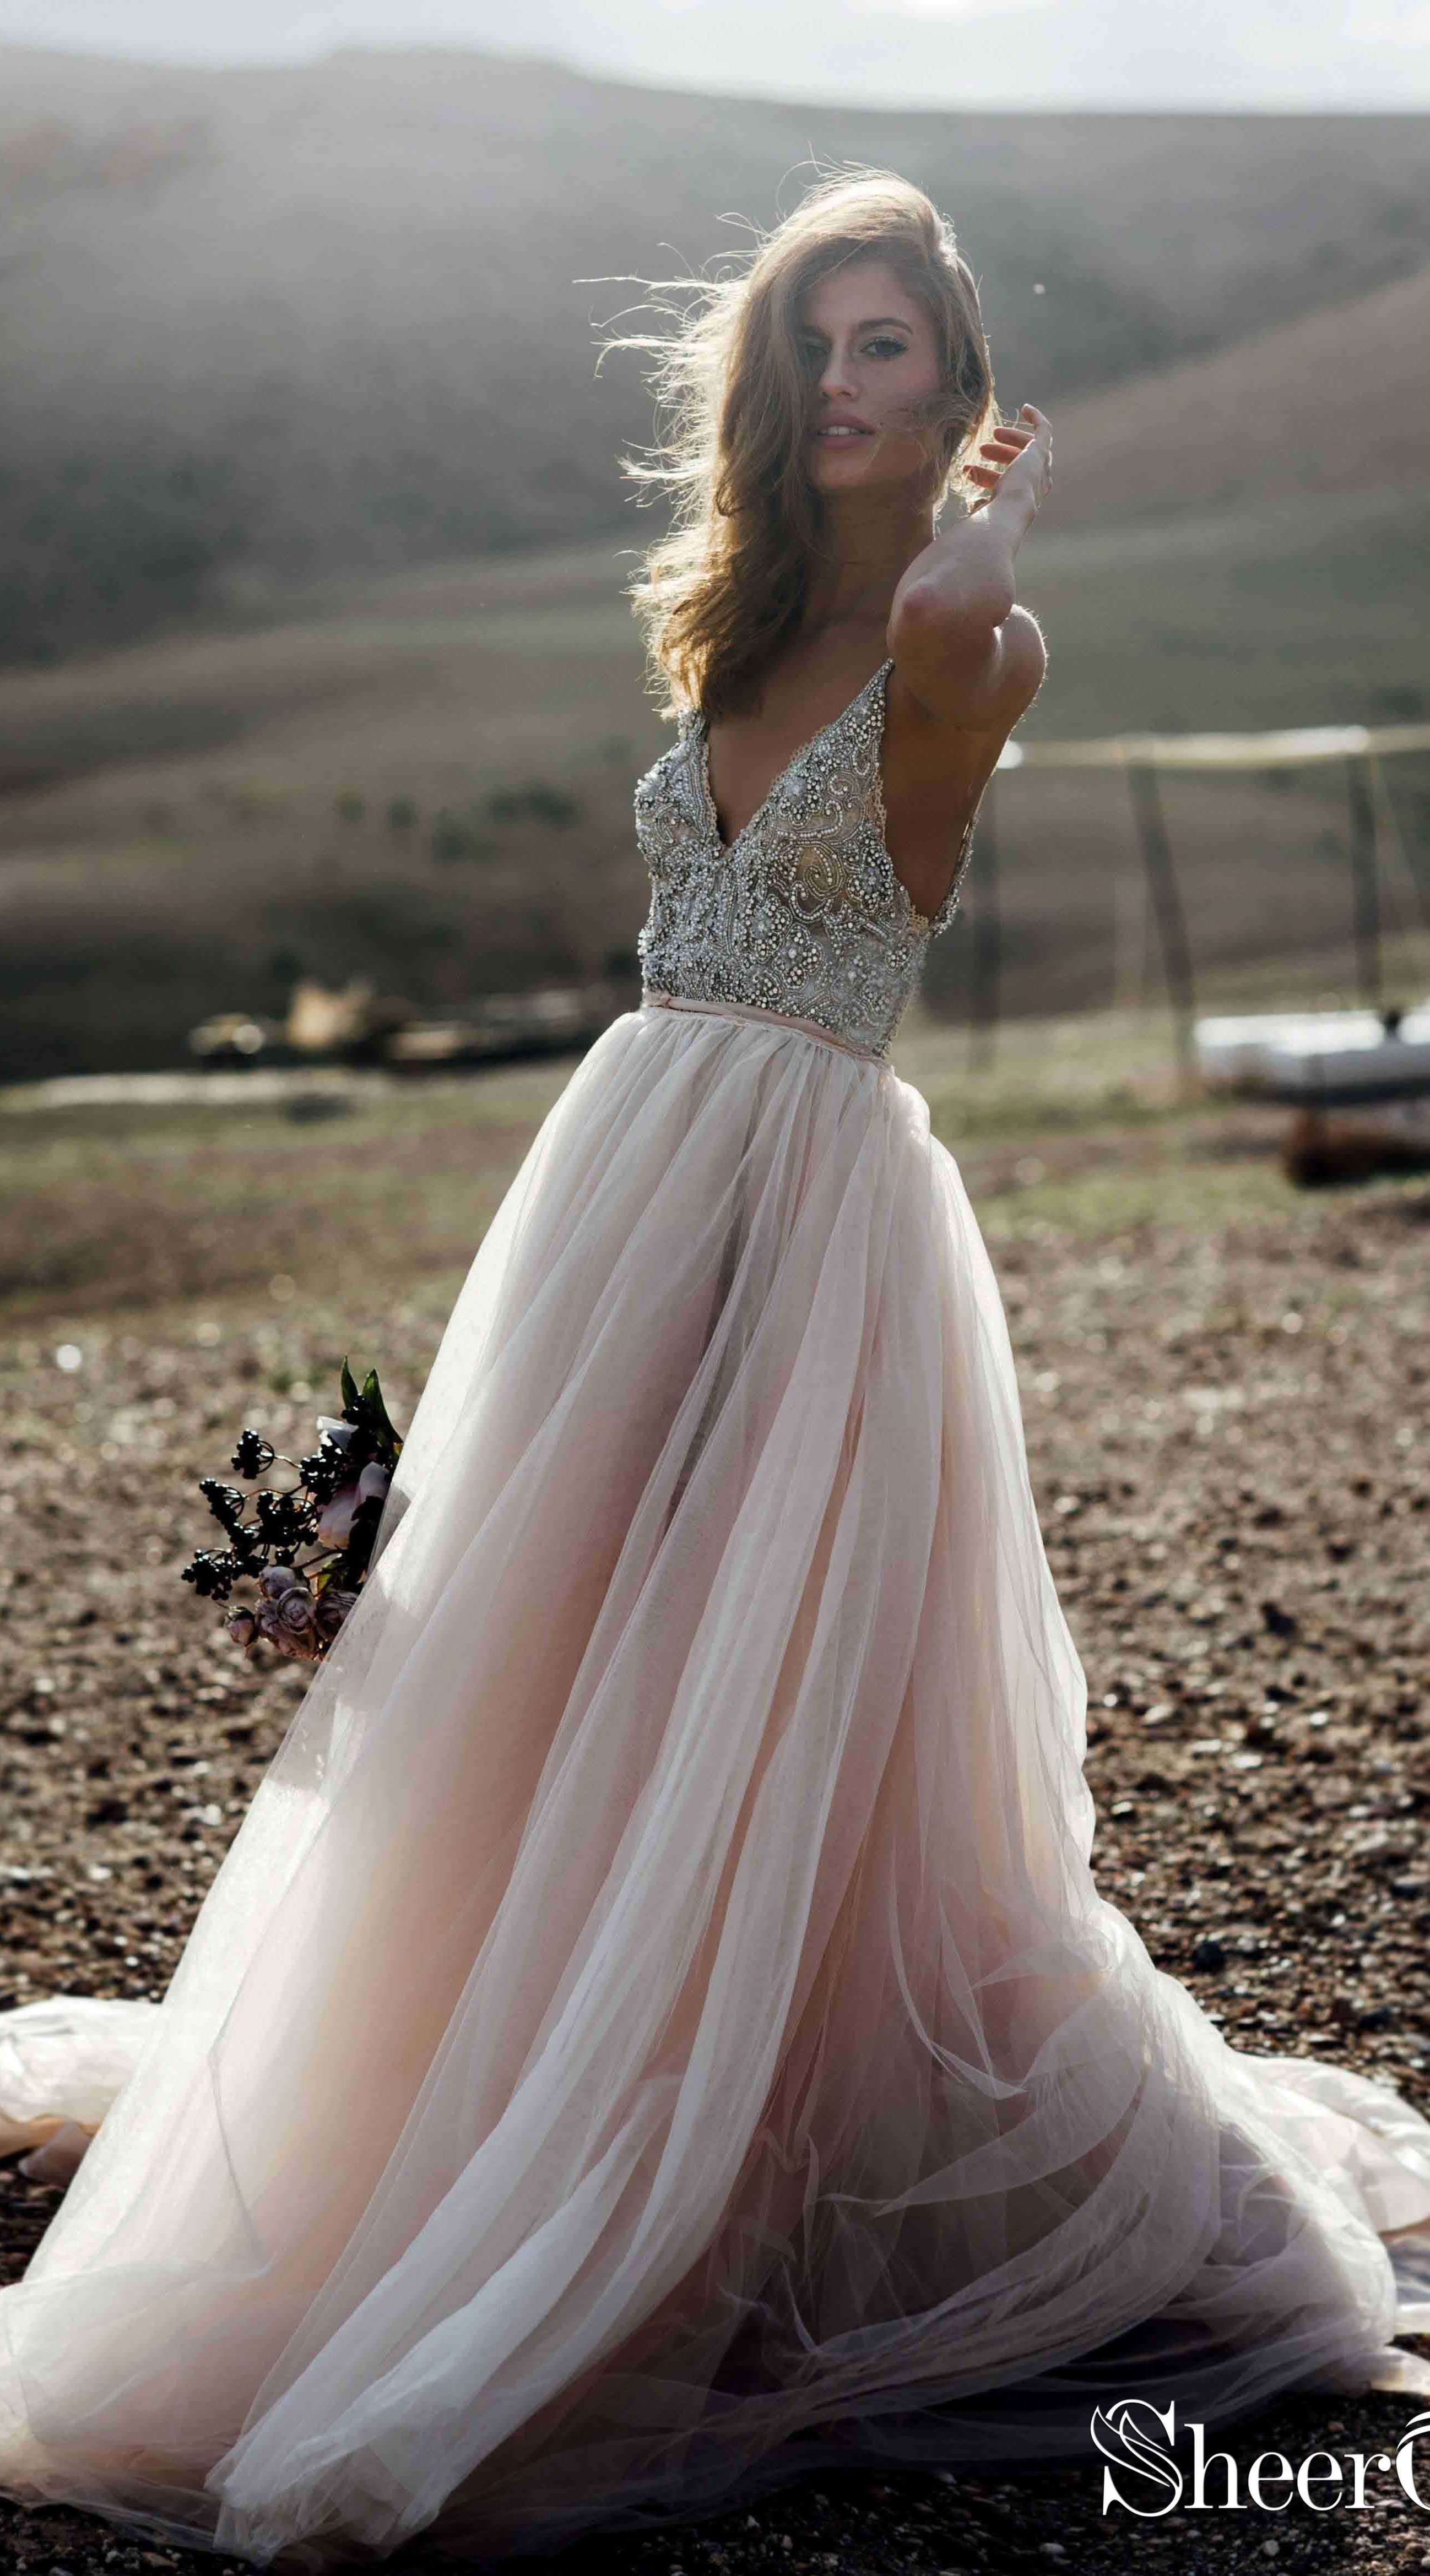 776f5ffa732e5 Spaghetti strap blush pink wedding dress with delicate beaded top.  #bohowedding #bohoweddingdresses #weddingdresses #weddingdress #weddings ...